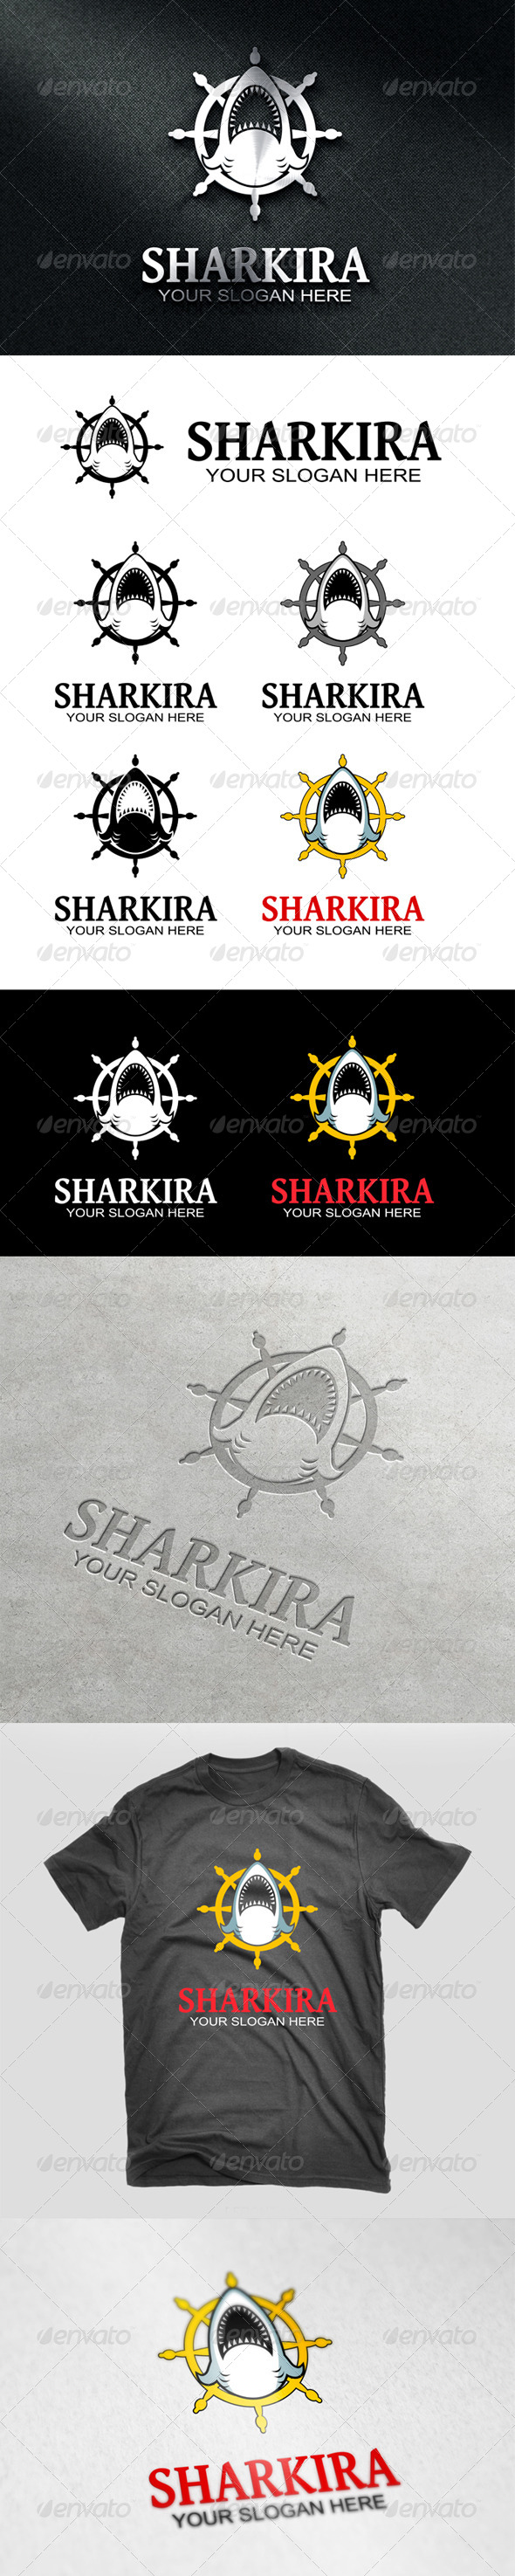 Sharkira Logo